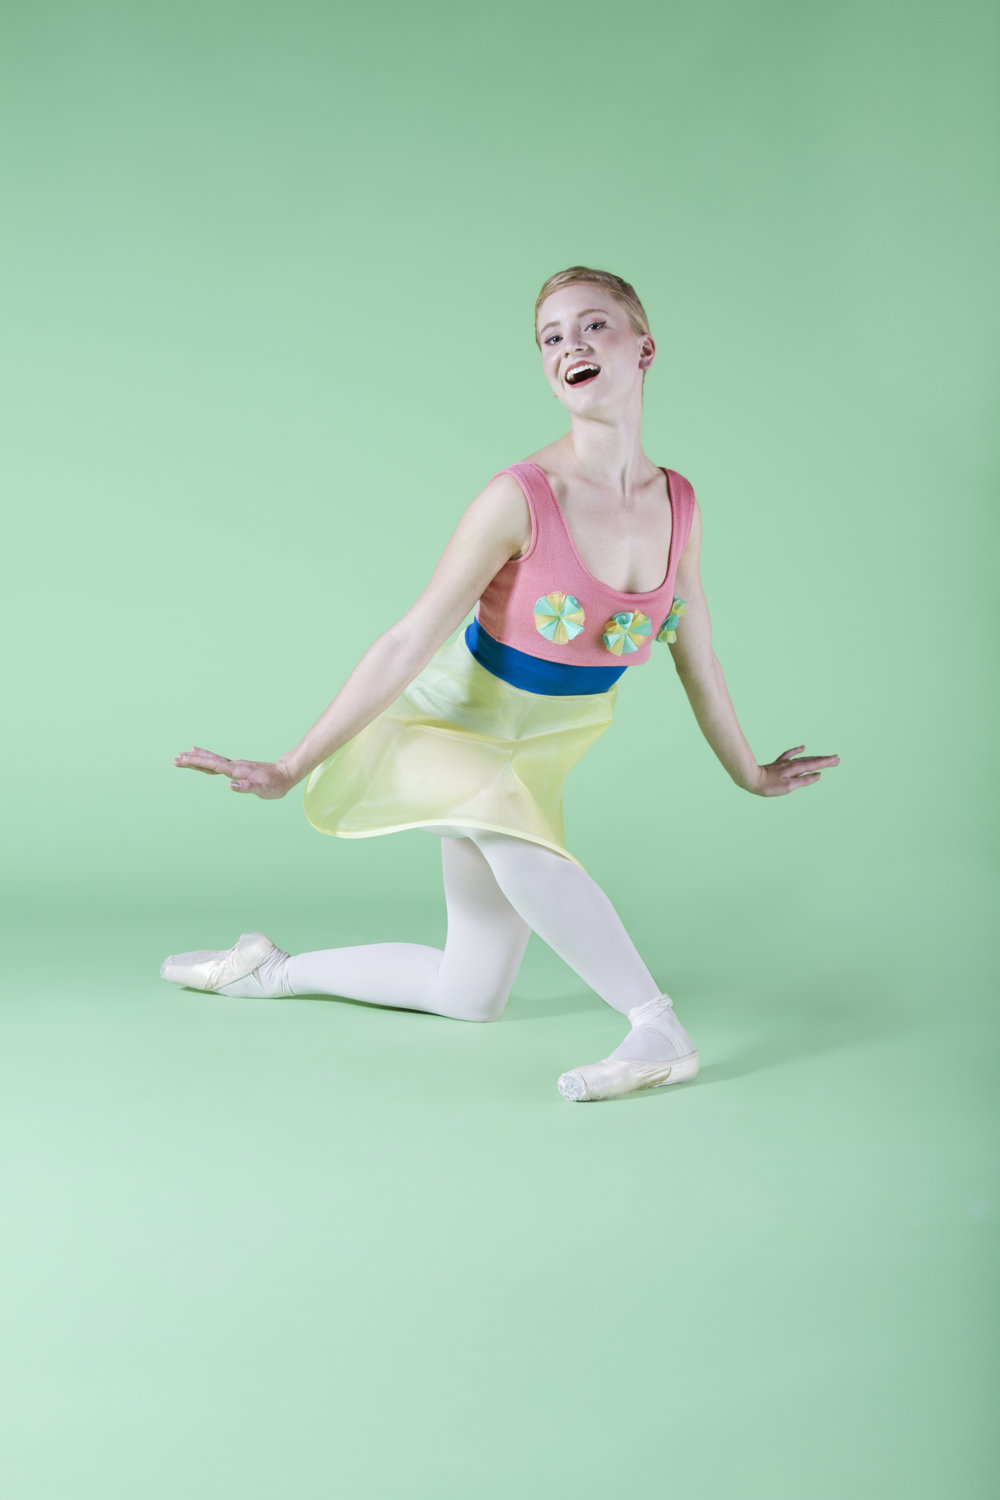 Sarah Bukowski as Marzipan, photo credit Art Lessman